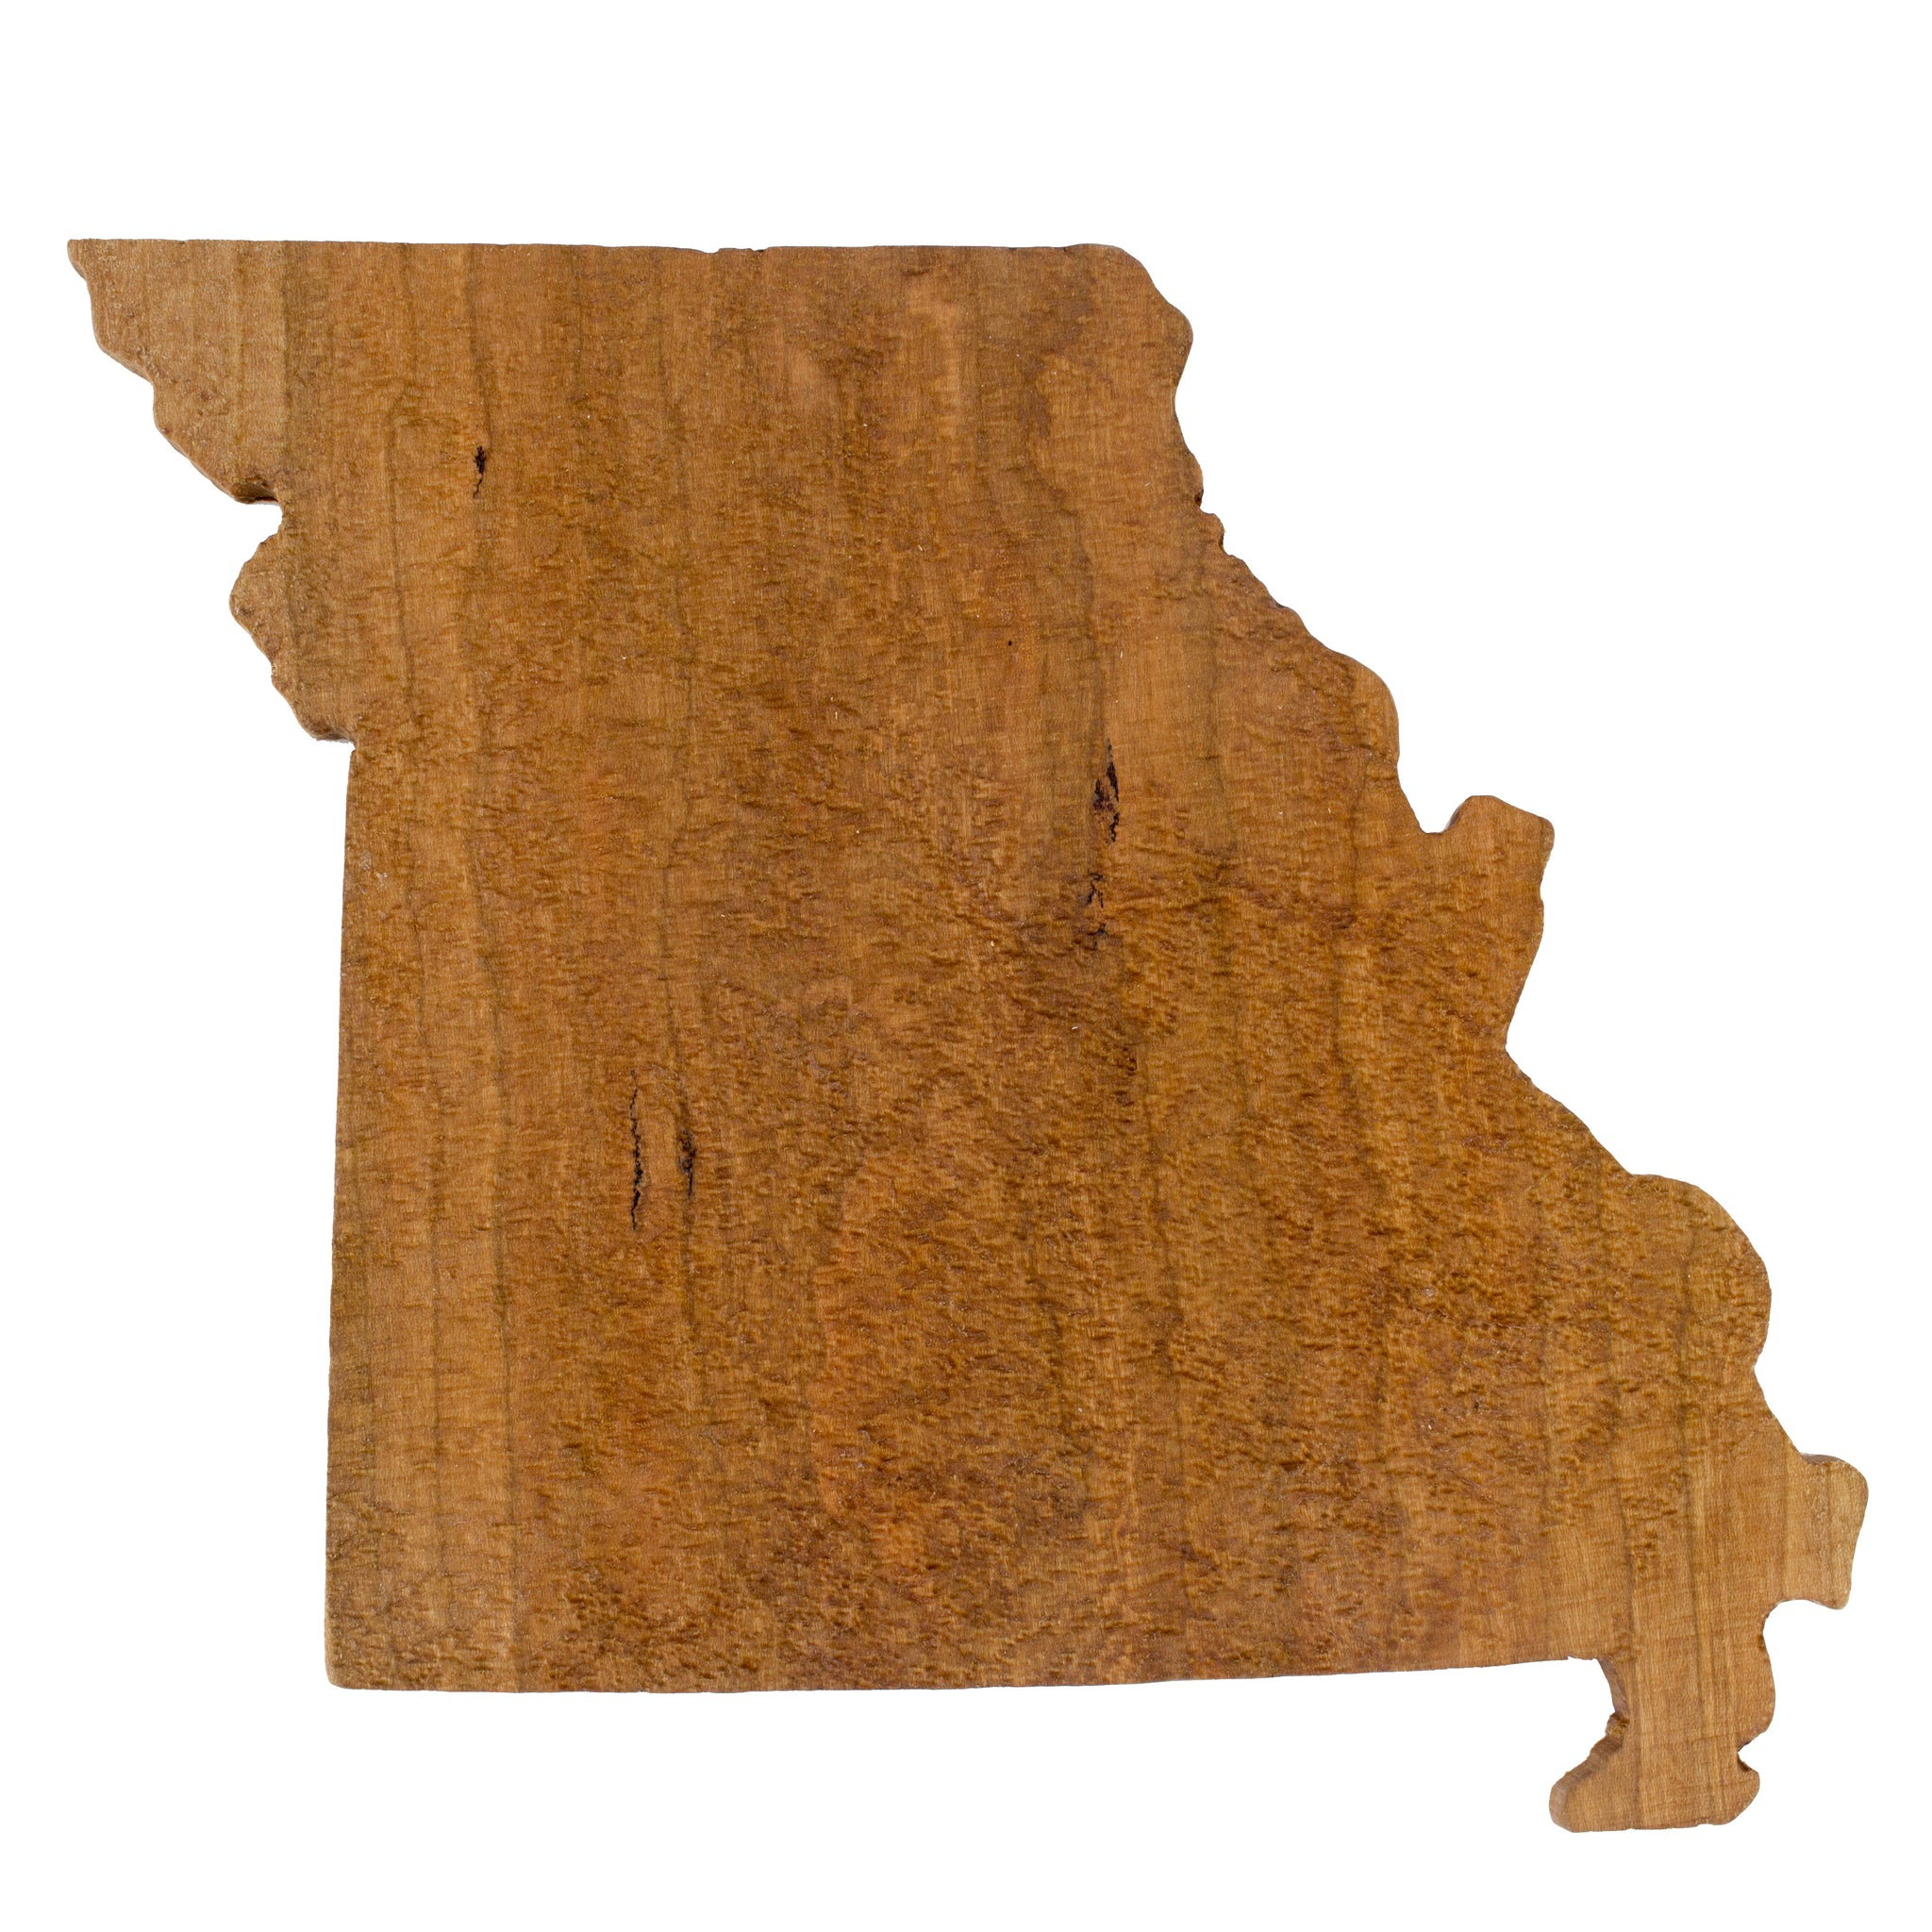 Wooden Topographic Map Of Missouri Elevated Woodworking